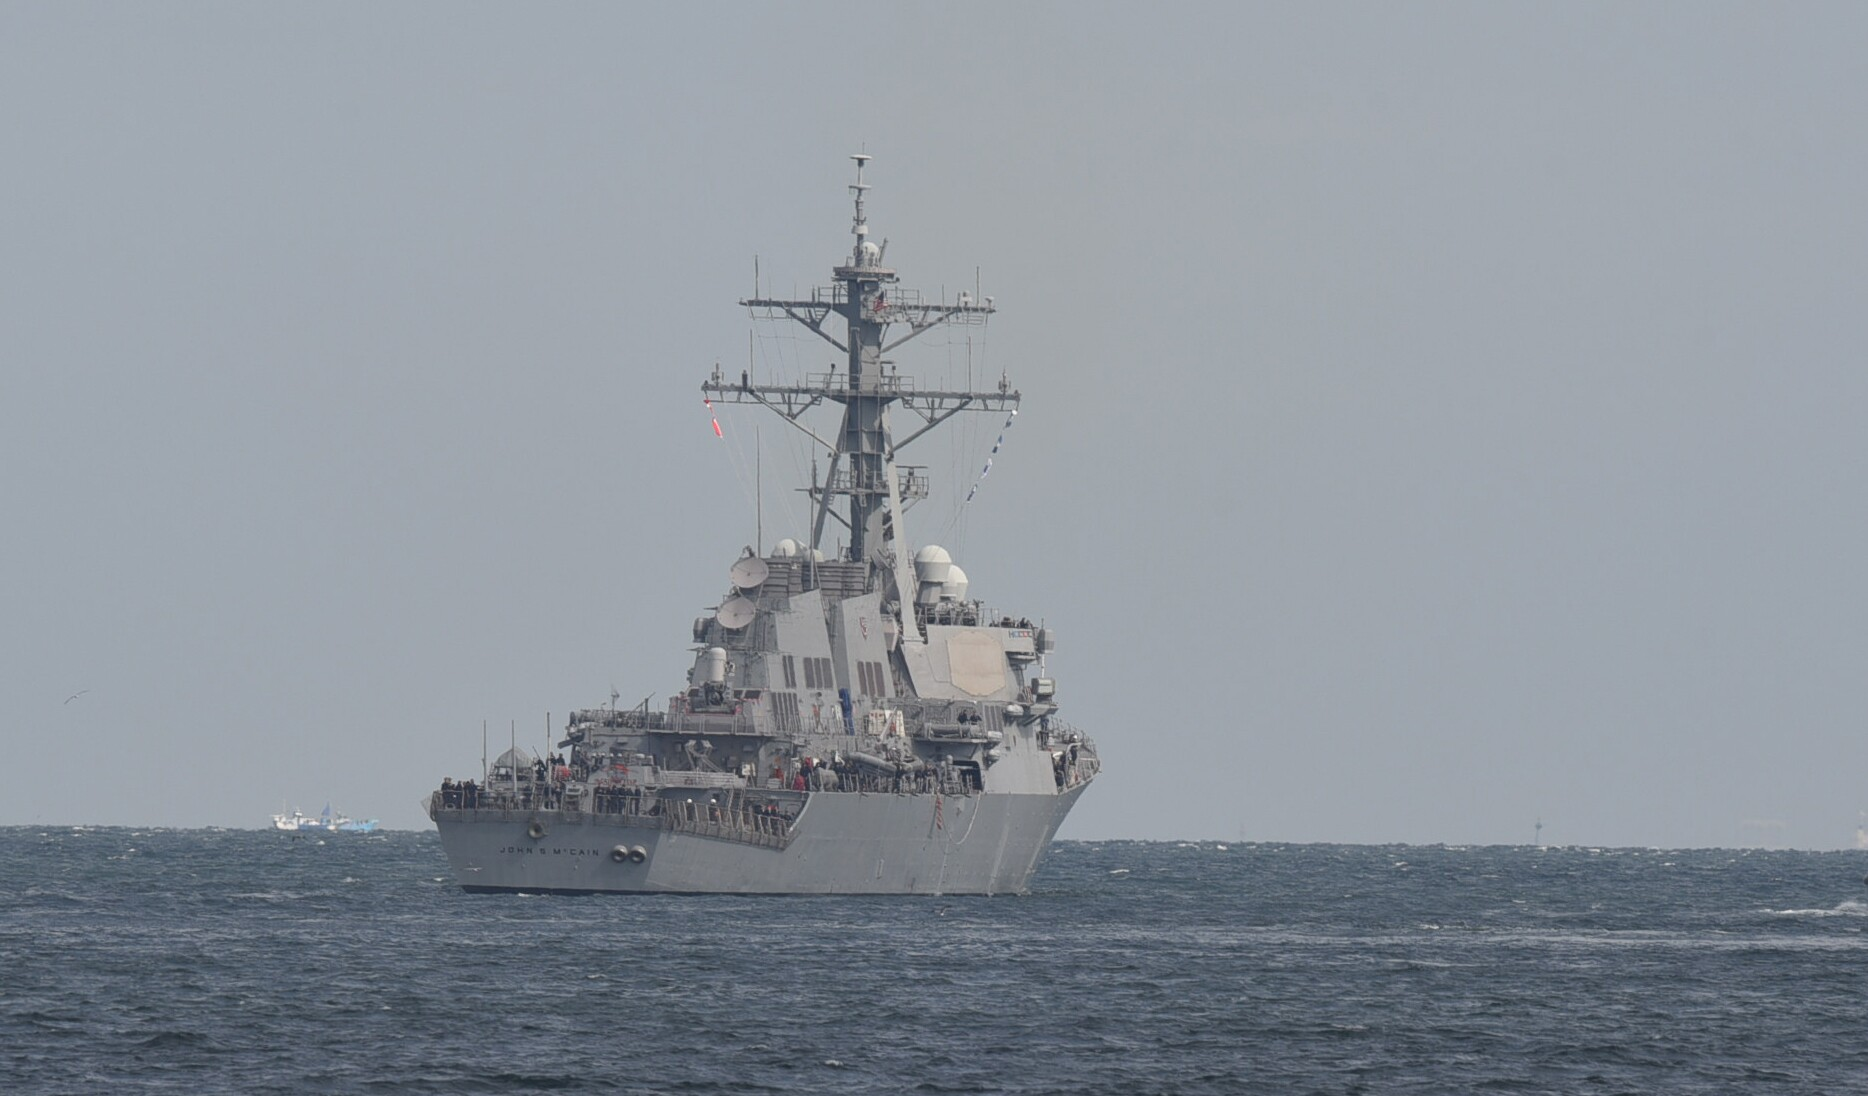 Photos: More than two years after deadly collision, USS John S. McCain returns to sea